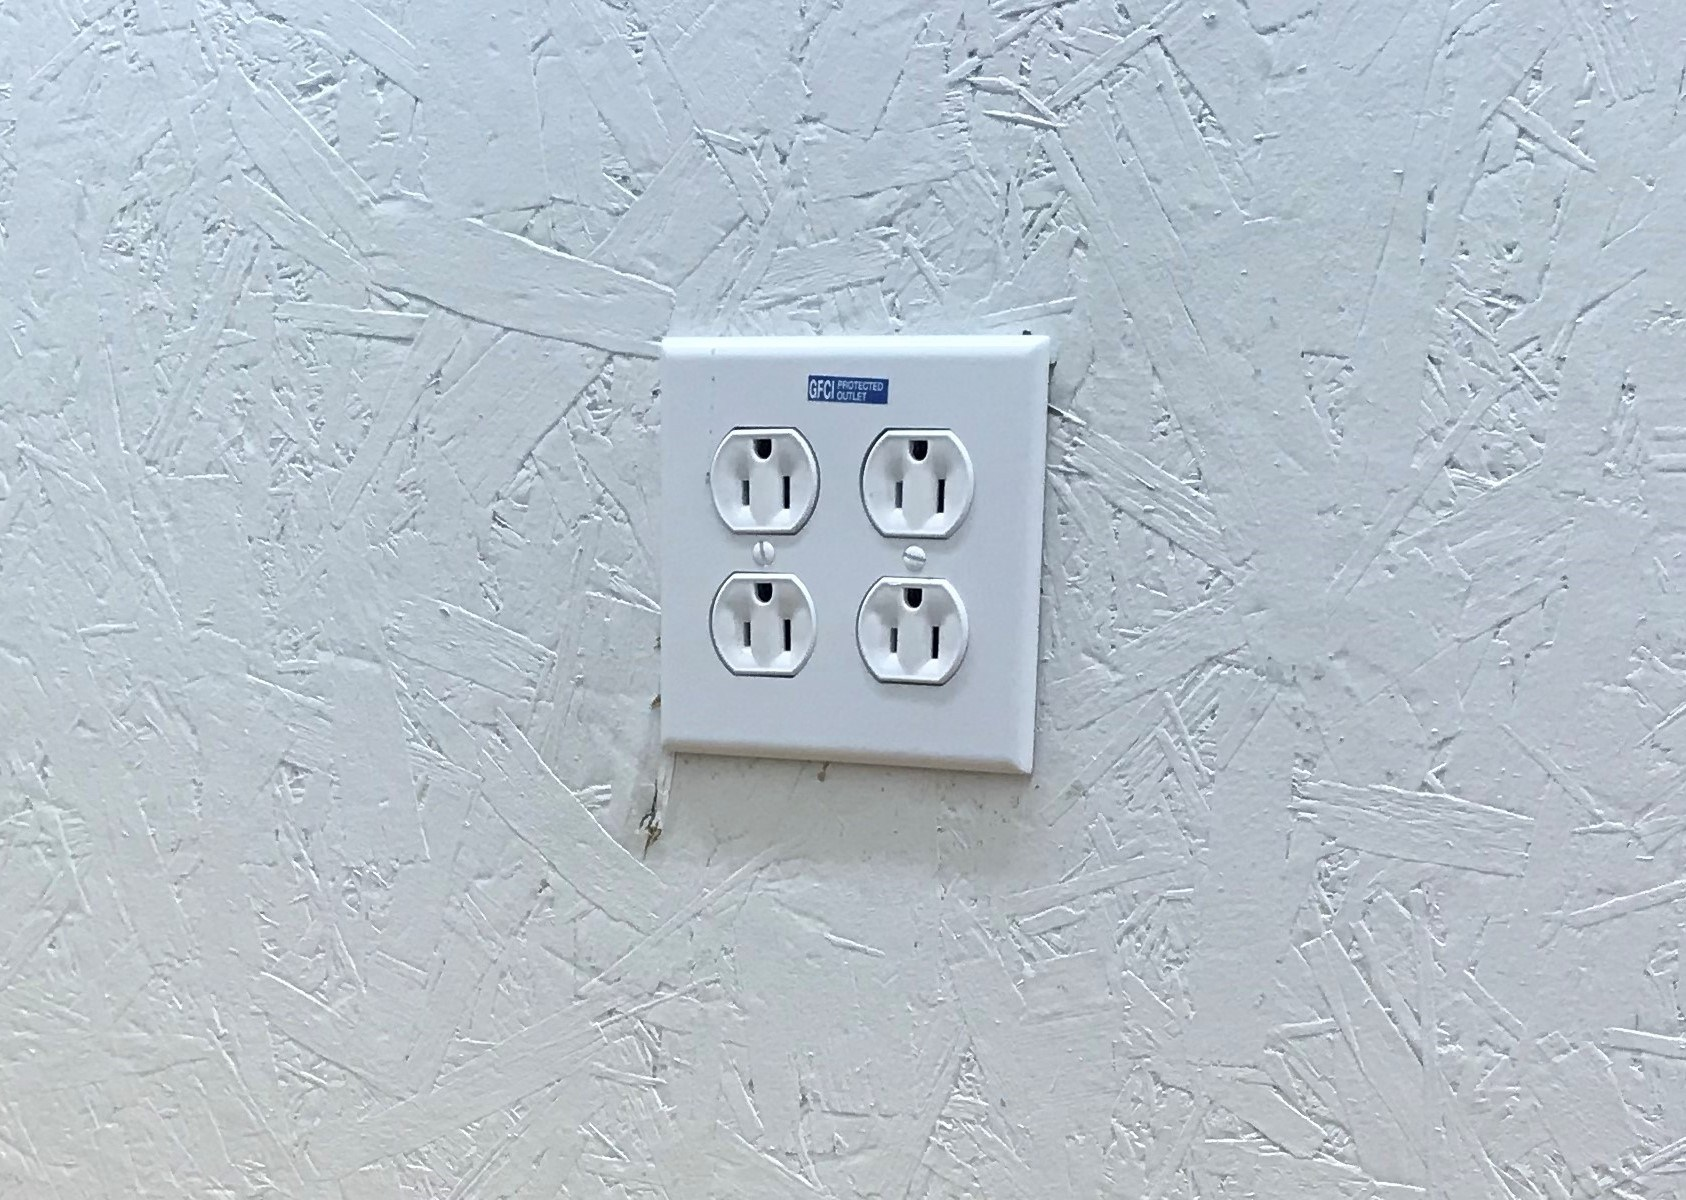 Outlets installed in wall